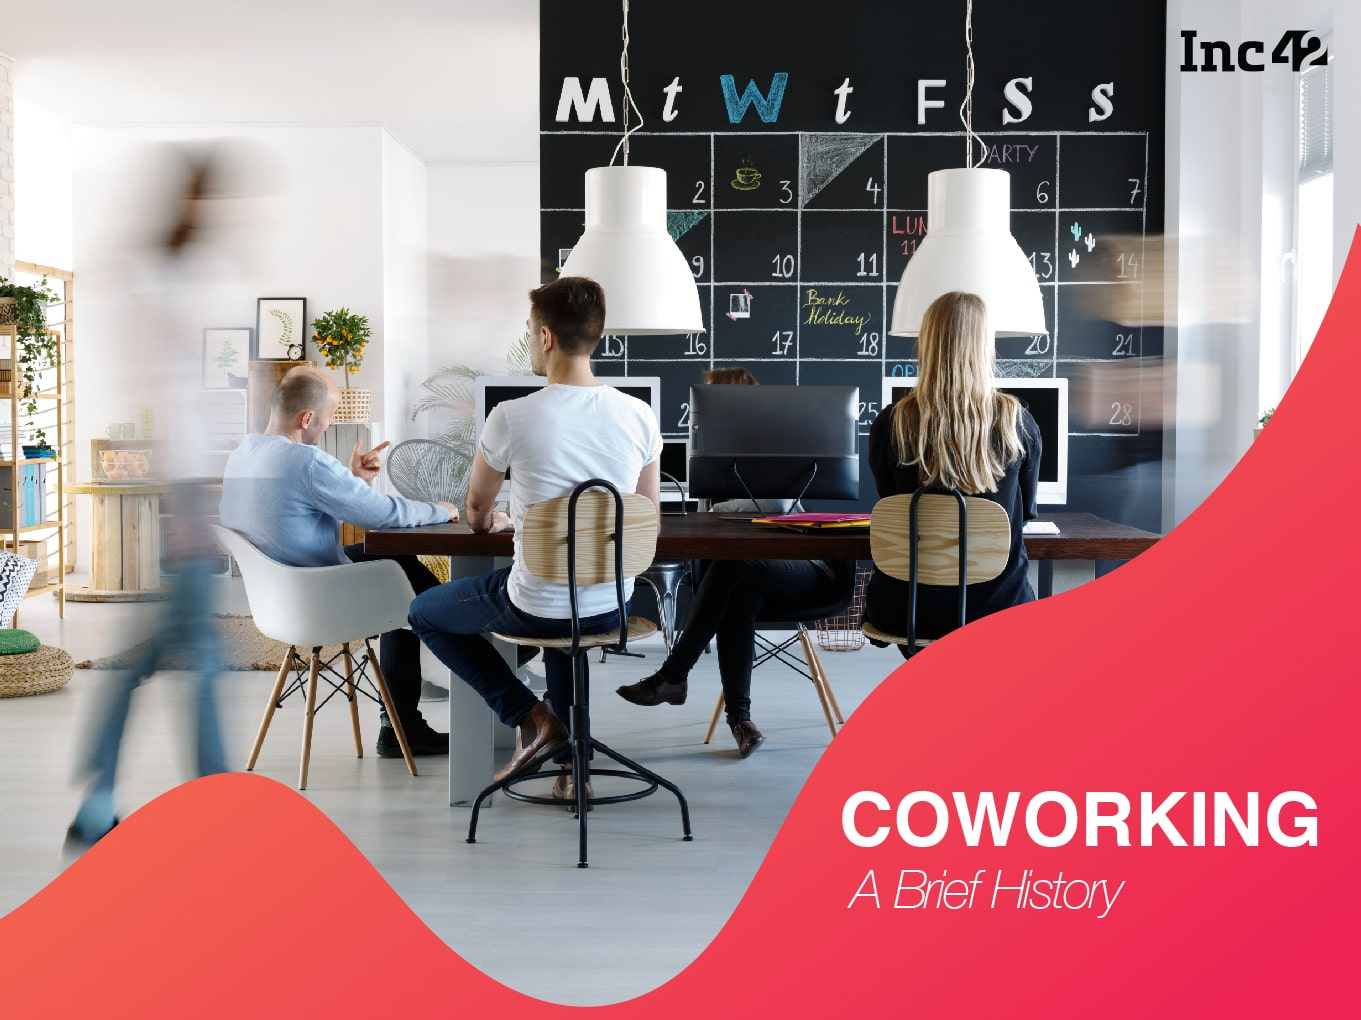 How Coworking Changed The Way People Work And Why It's Still Going Strong